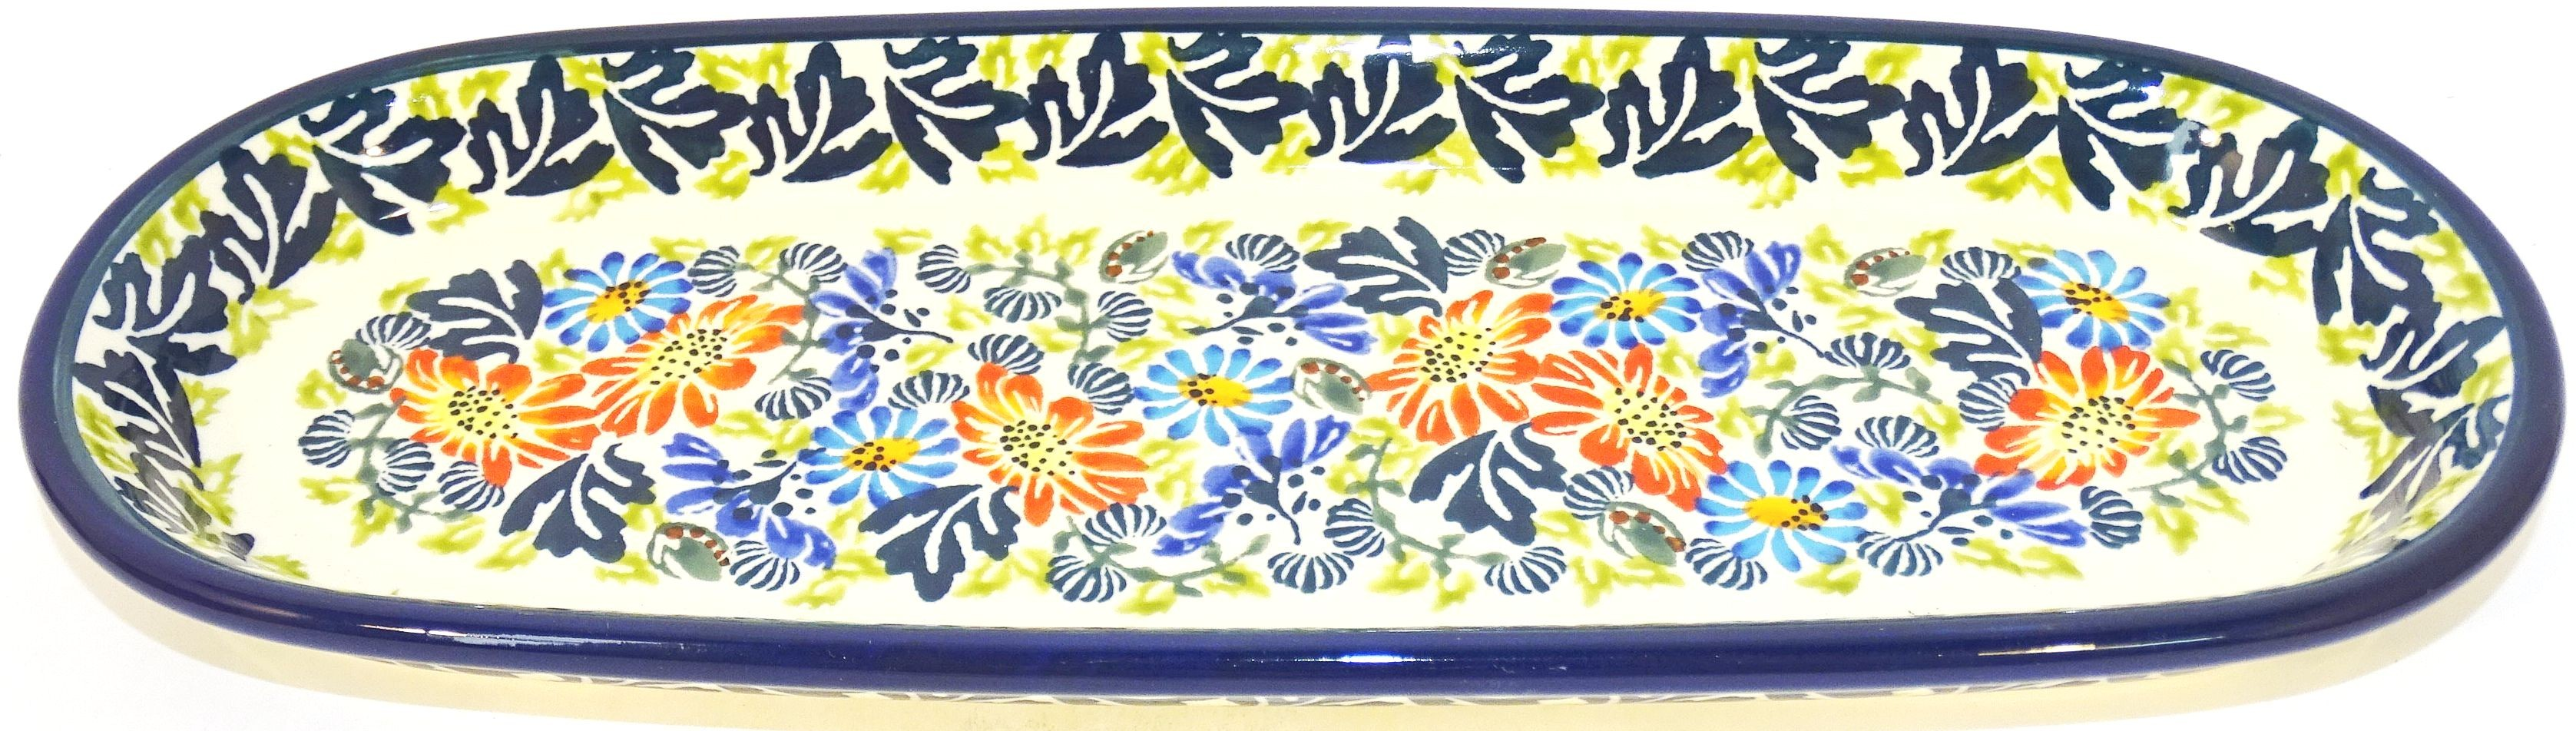 "Pottery Avenue 11"" BLISS Cracker-Olive Stoneware Tray 